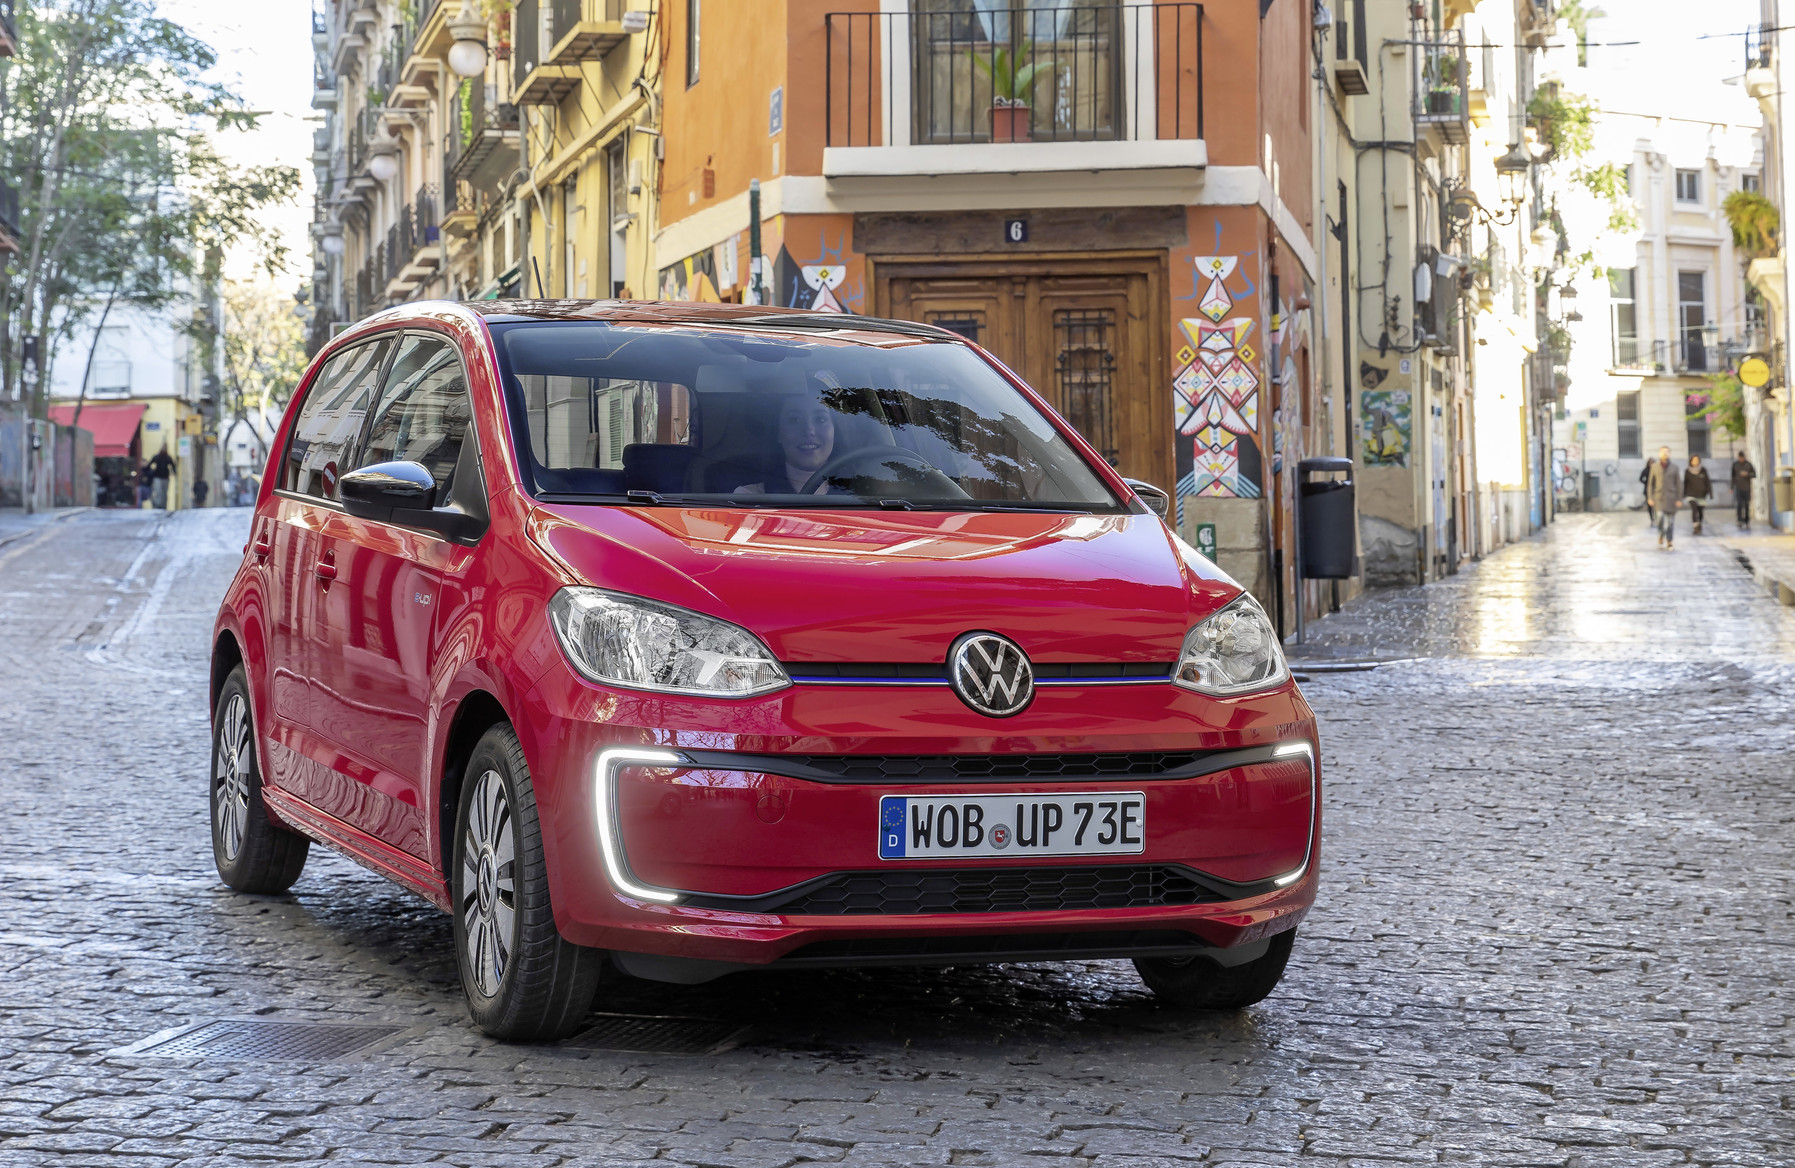 Cheap electric cars - Volkswagen e-up!